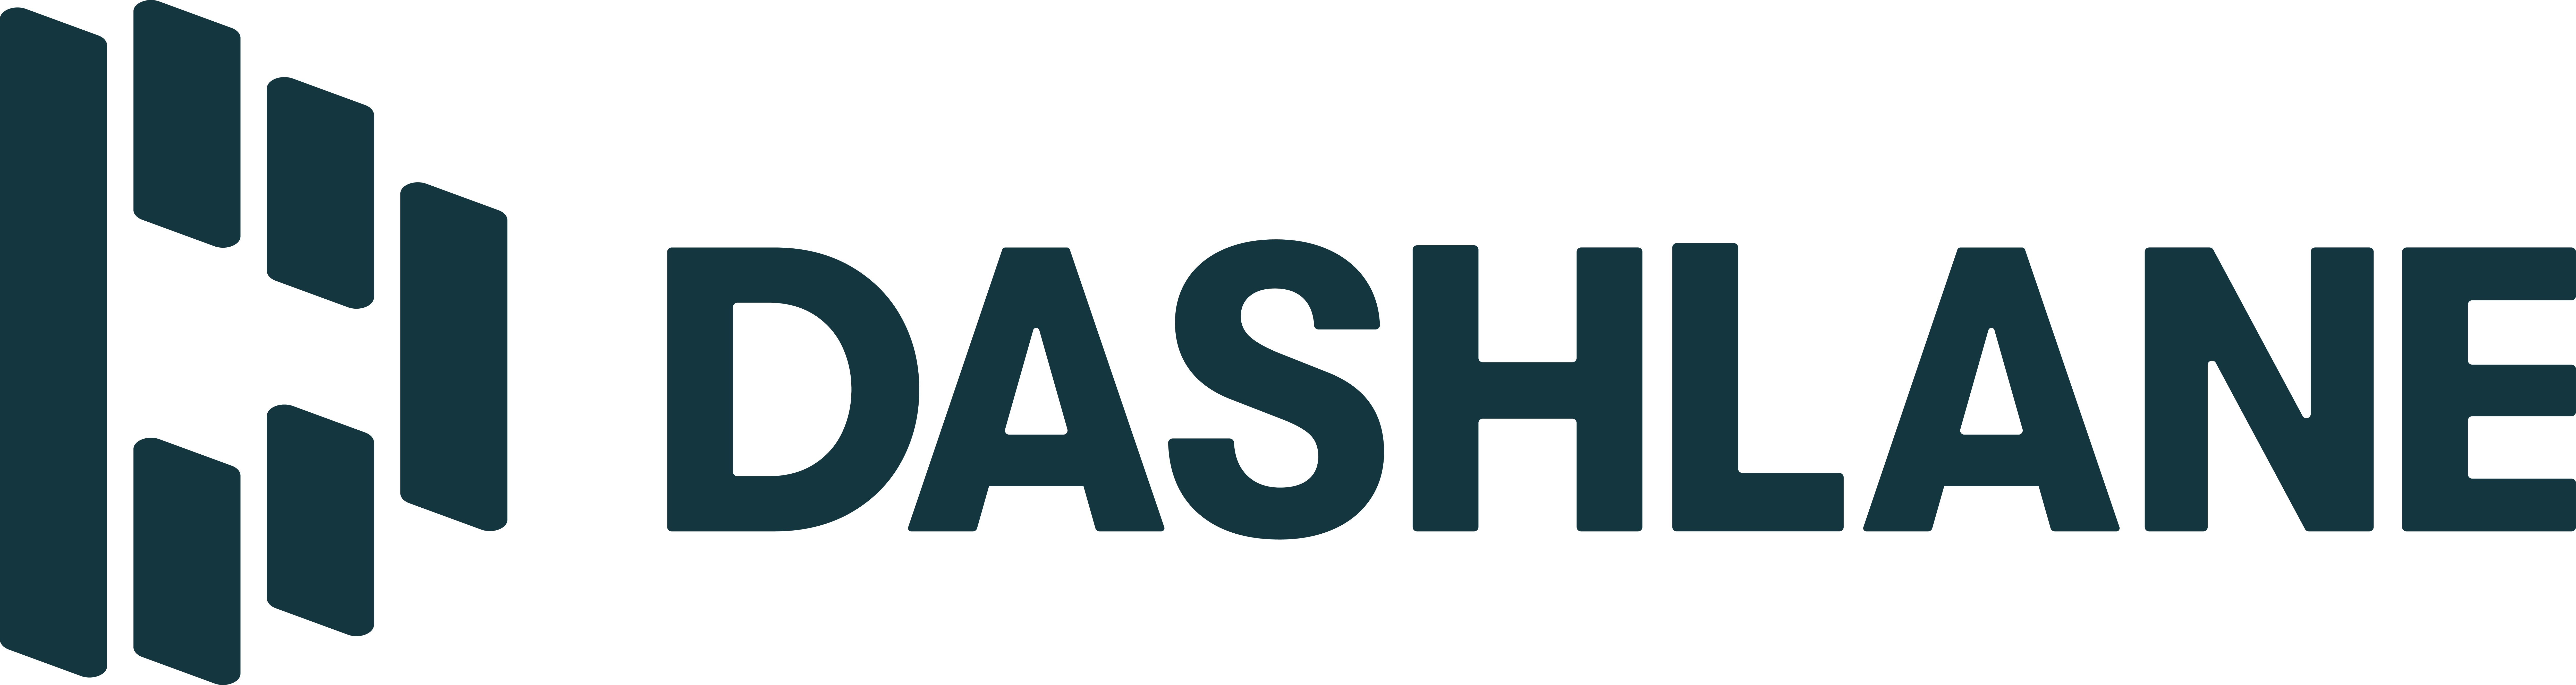 Dashlane new logo